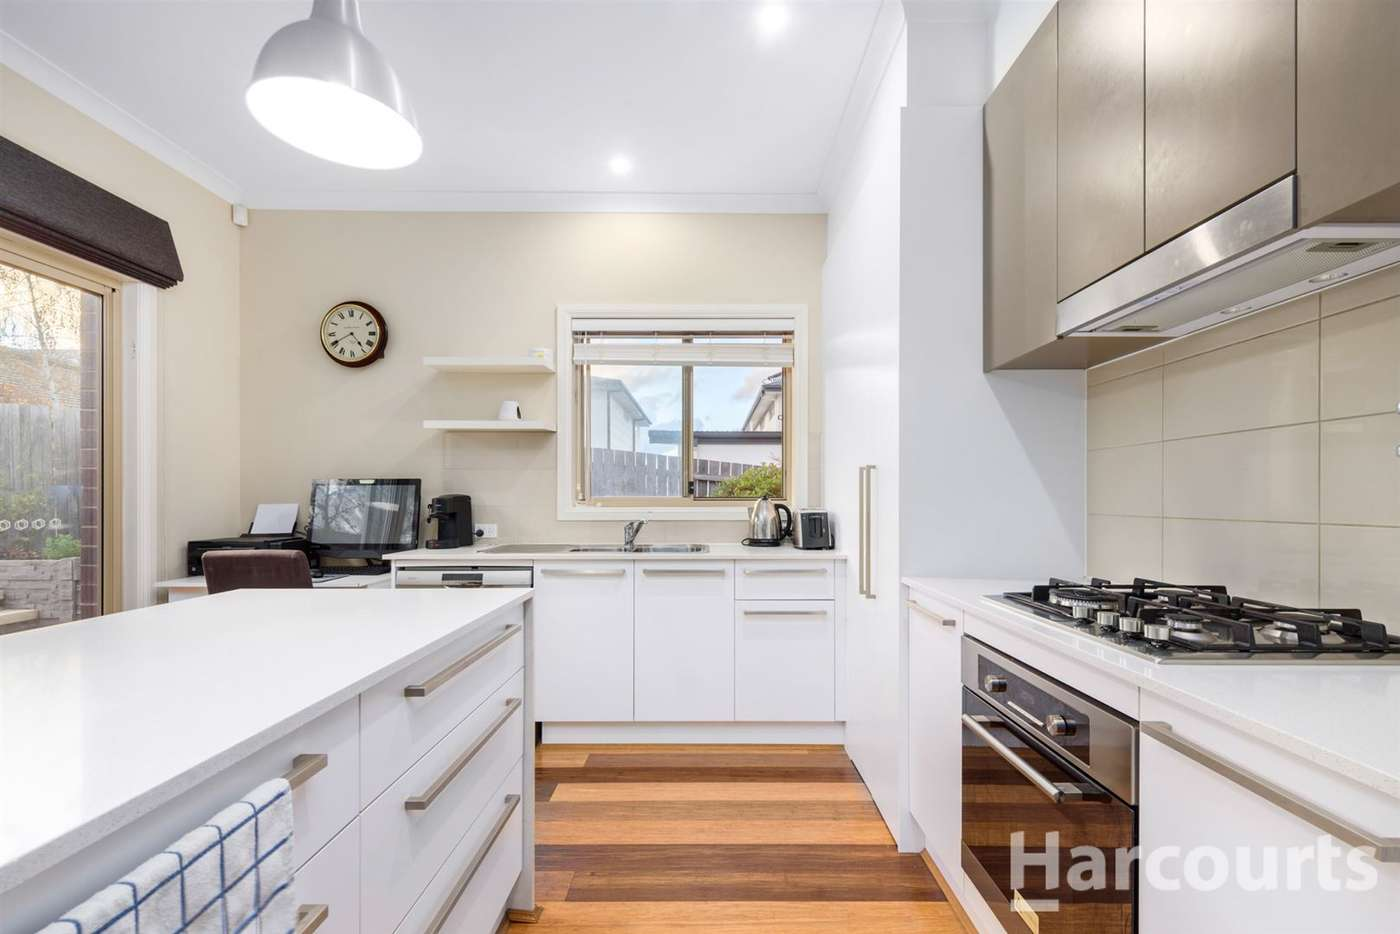 Fifth view of Homely house listing, 4 Lacewing Street, Wright ACT 2611